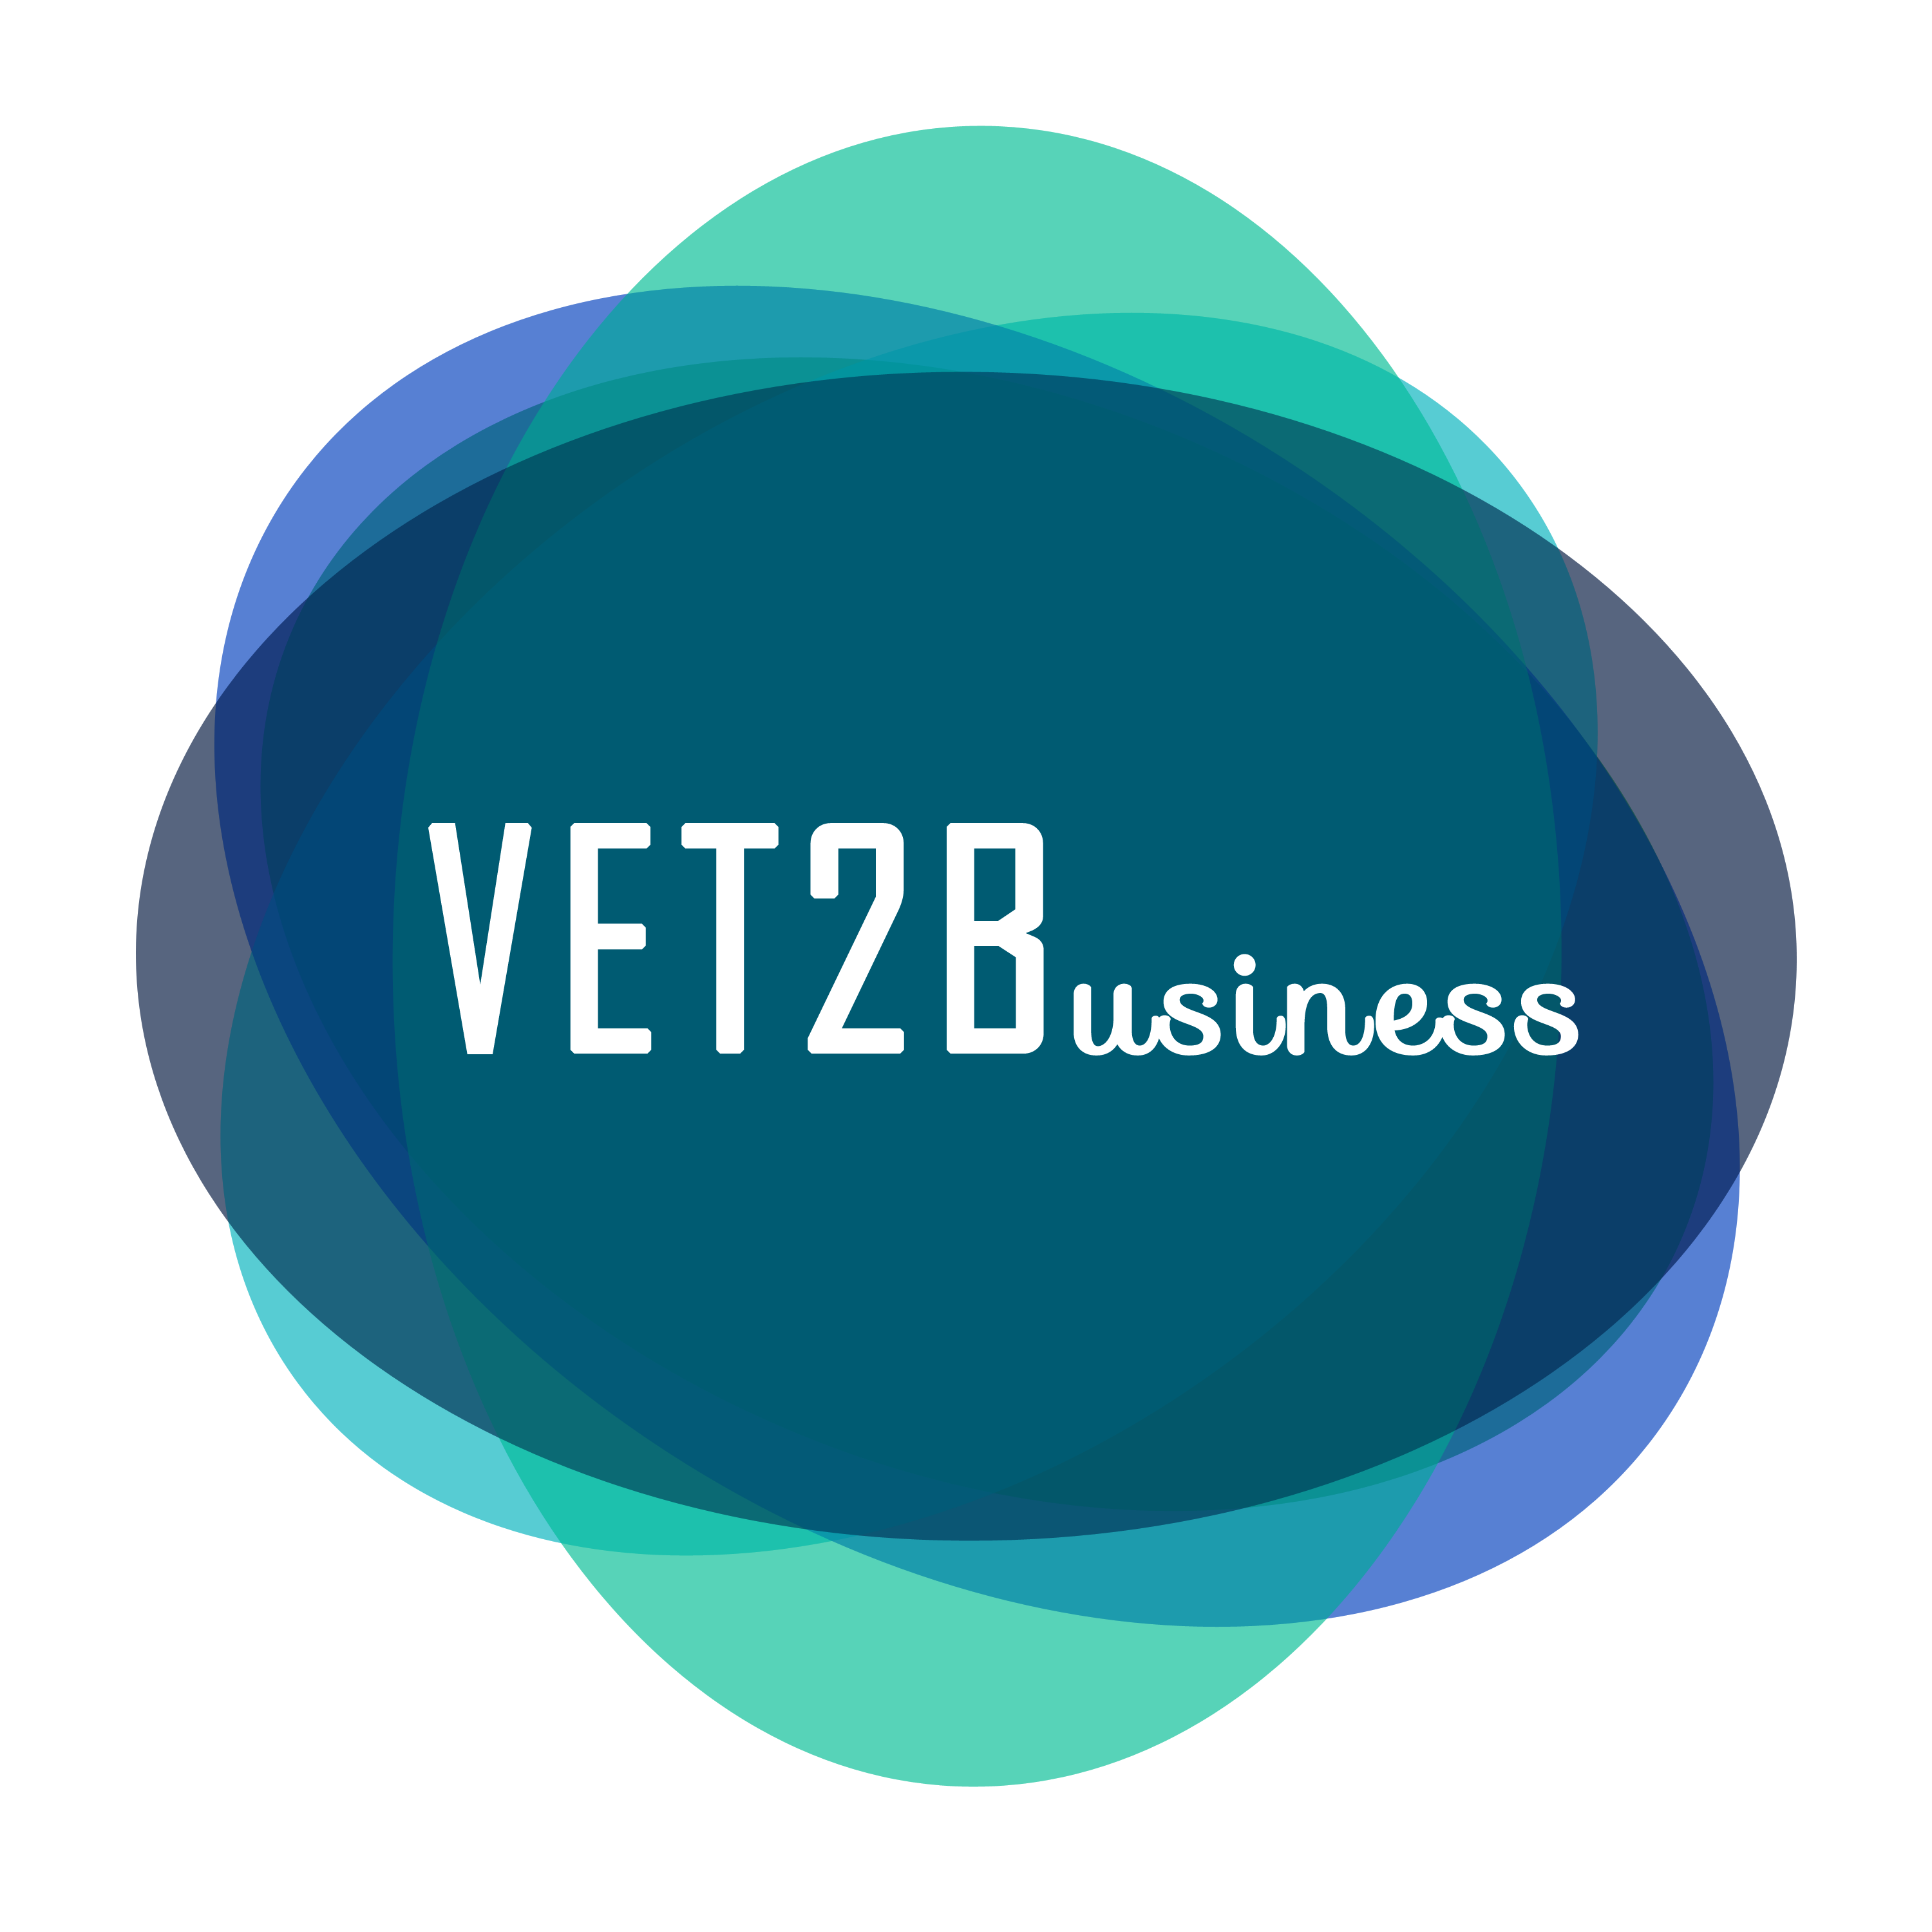 vet2business logo transp